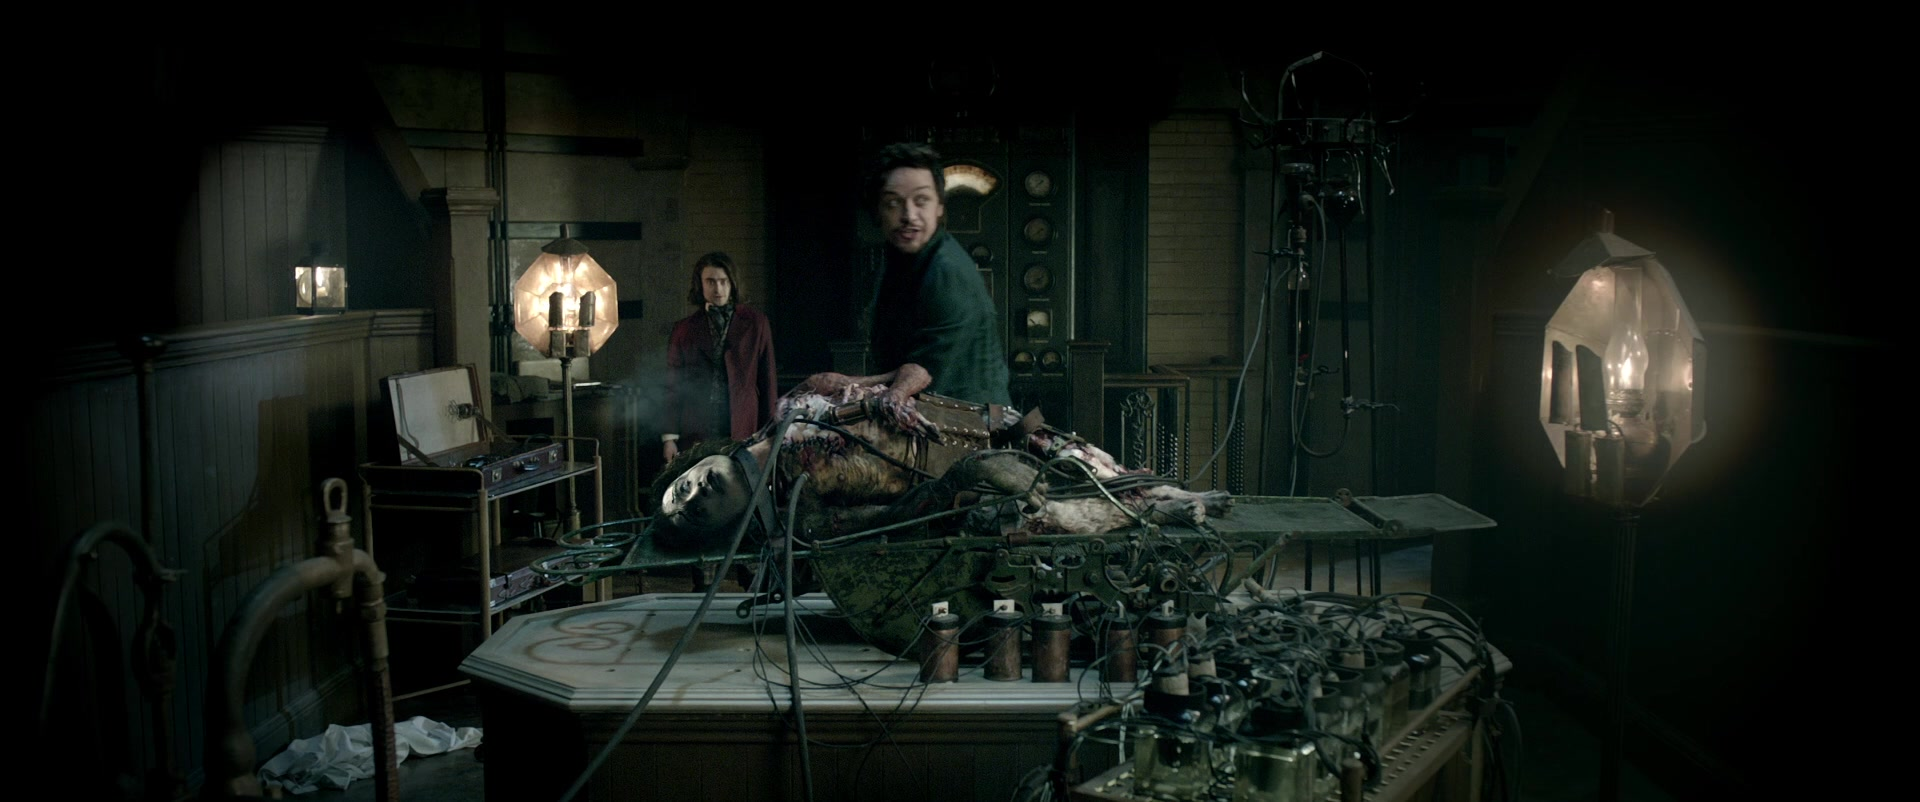 victor frankenstein as a deadbeat dad Victor frankenstein was the name i'm rather new to the grand world of reddit makes me wonder if the moral of the story was 'don't be a deadbeat dad' permalink.